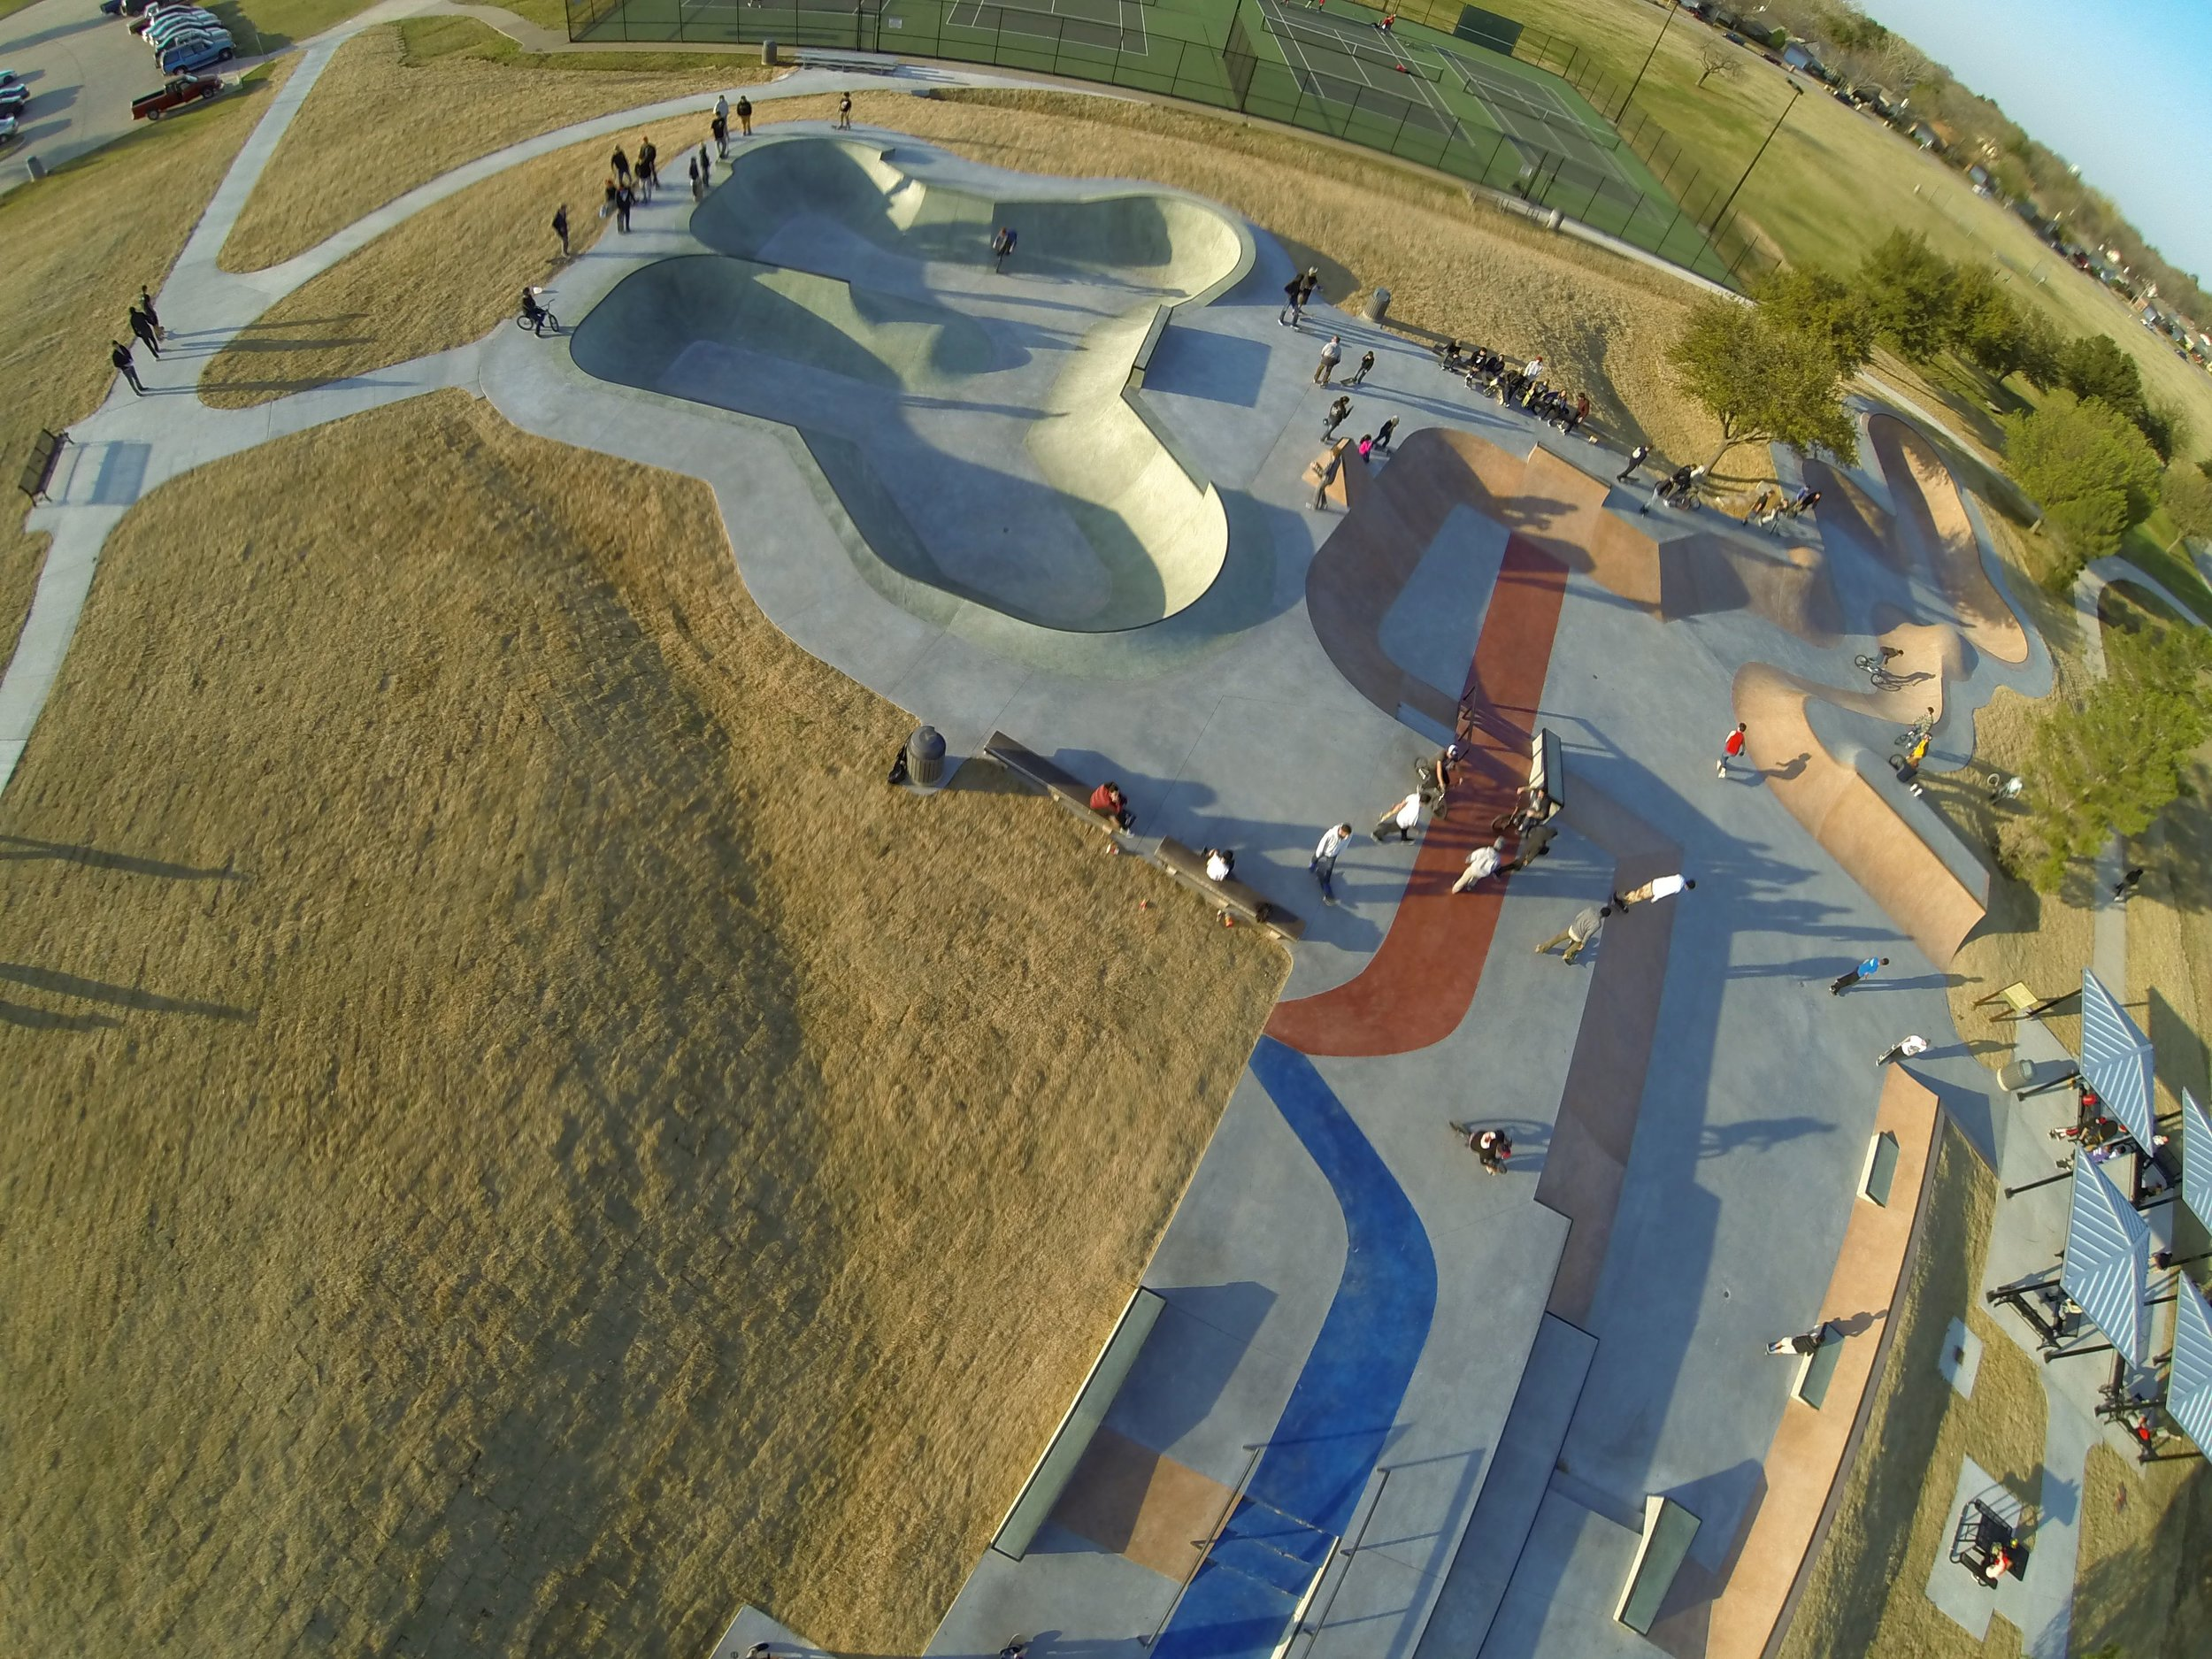 Arlington's Vandergriff Skatepark, photo by drone. This park is the largest and most centrally located of the multiple parks included in Arlington's 10 Year Skatepark Master Plan. This park is a regional magnet drawing skaters from around the metroplex.